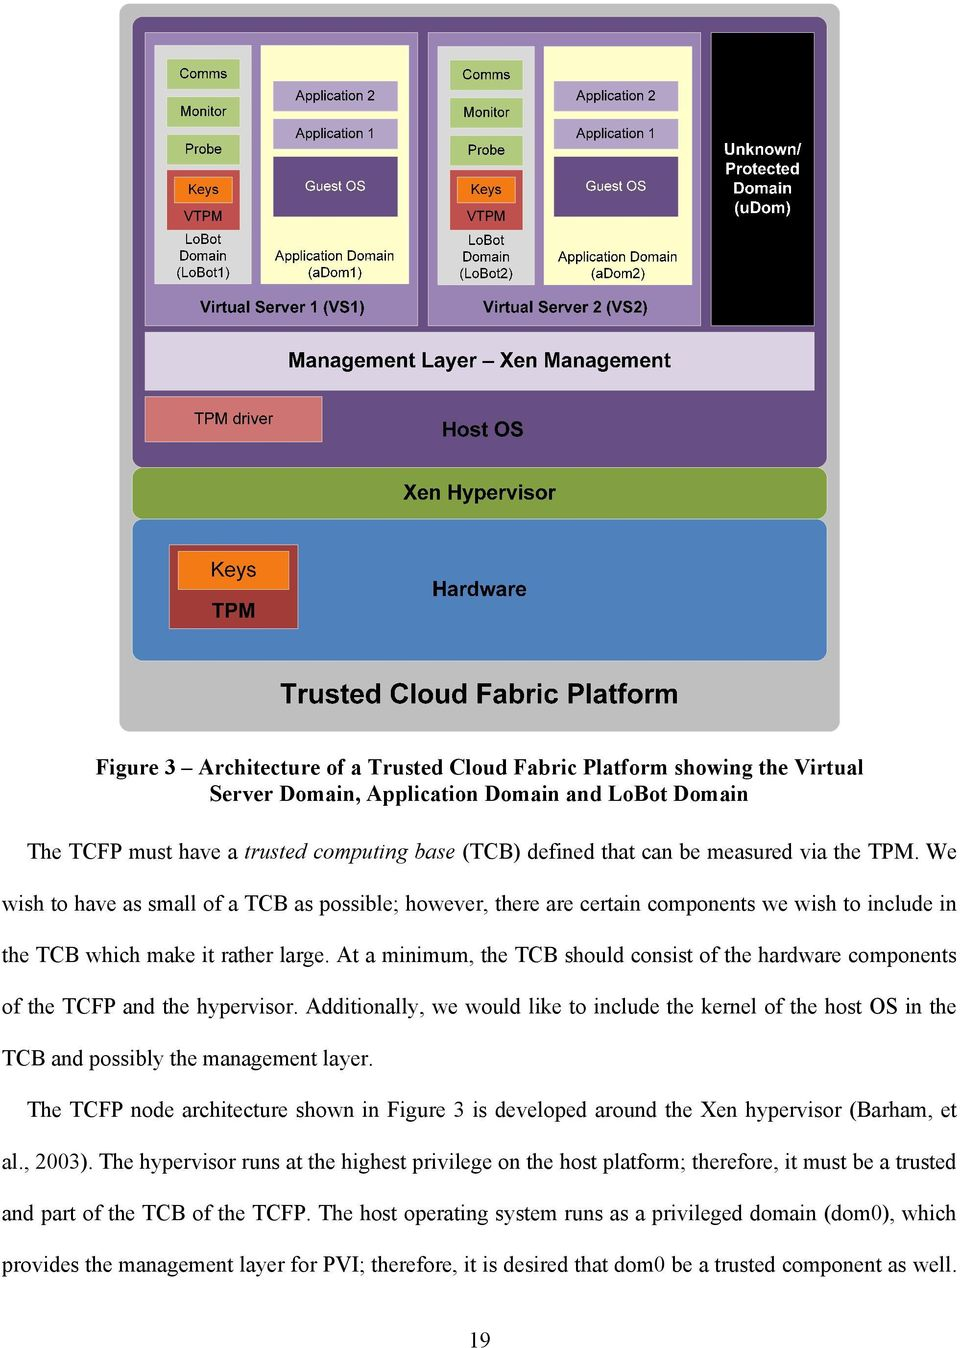 At a minimum, the TCB should consist of the hardware components of the TCFP and the hypervisor.